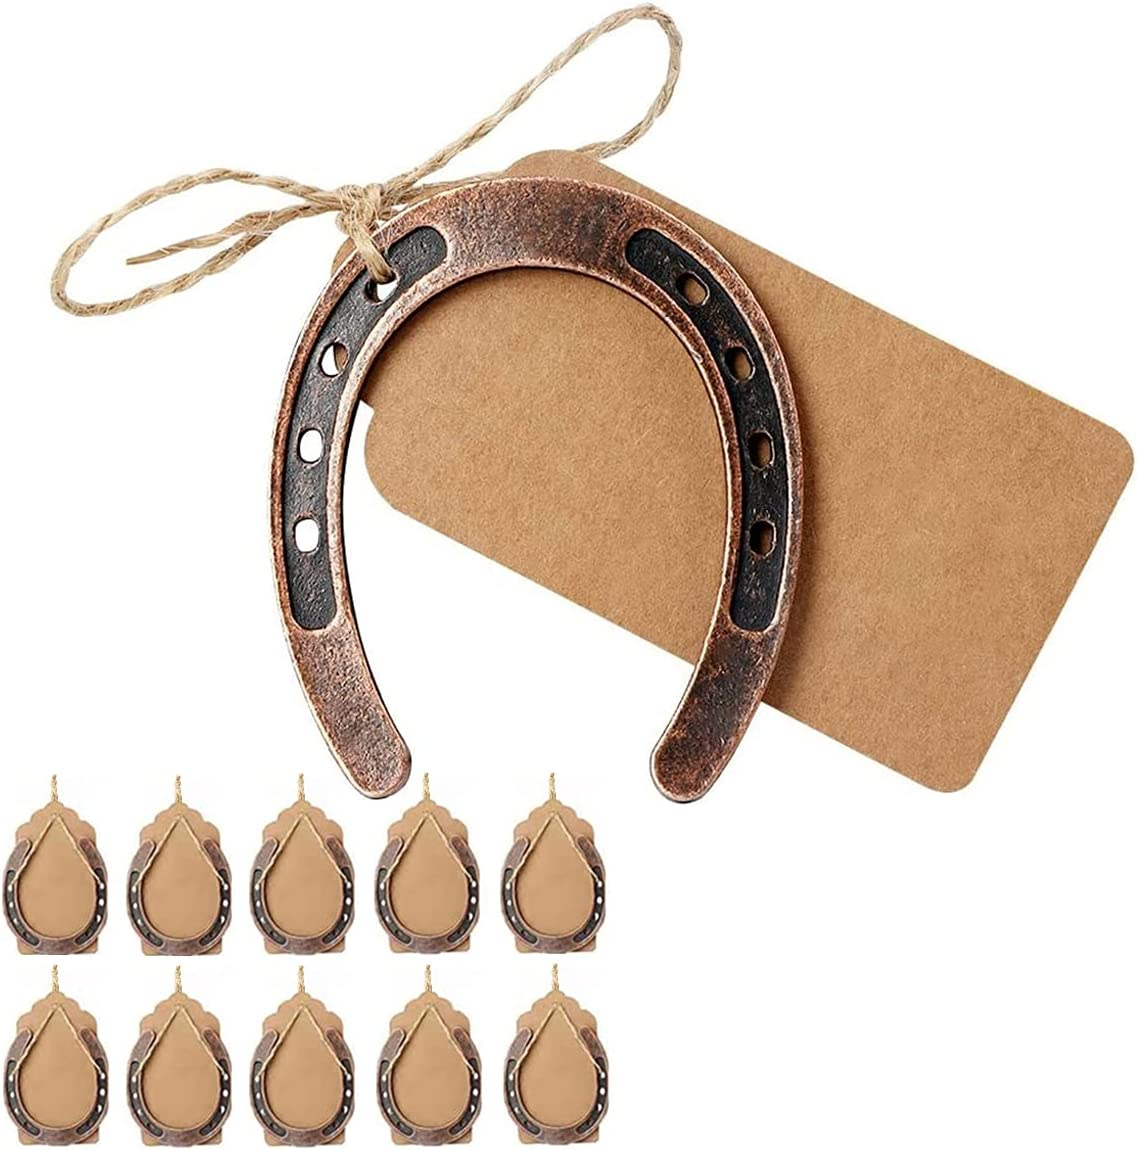 HDFSP 10pcs Lucky Horseshoe Wedding Favors with Kraft Tag, Vintage Metal Mini Horseshoe Decorations for Rustic Wedding Birthday Party Decorations